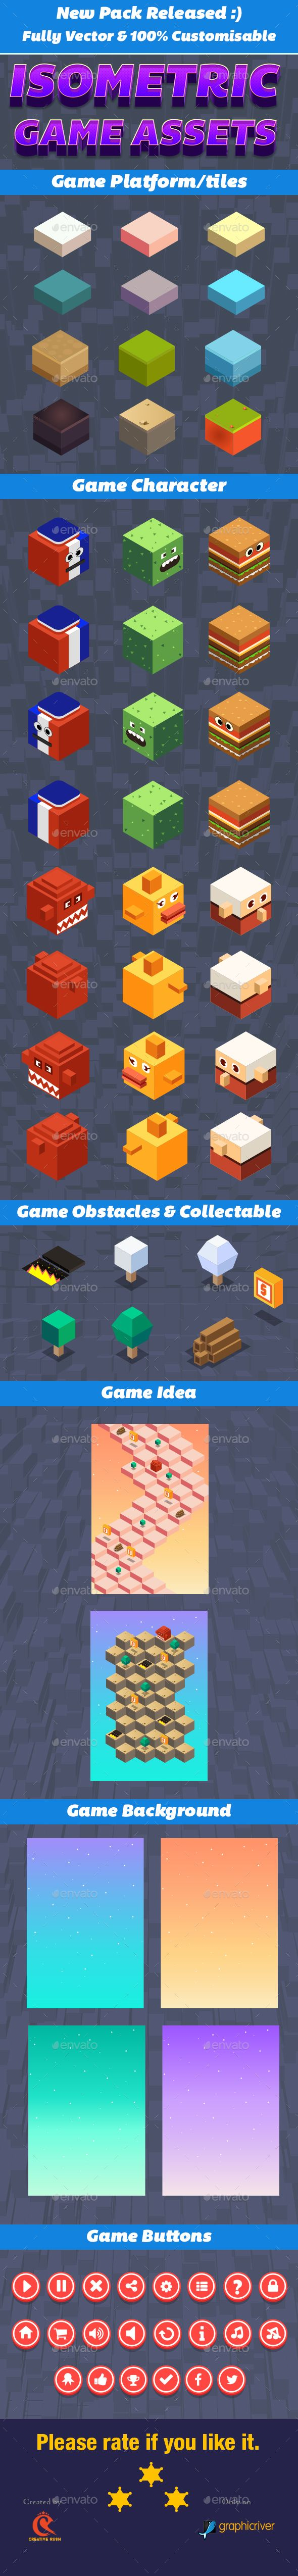 Isometric Game Character Sprite - User #Interfaces #Game Assets Download here: https://graphicriver.net/item/isometric-game-character-sprite/17124556?ref=alena994